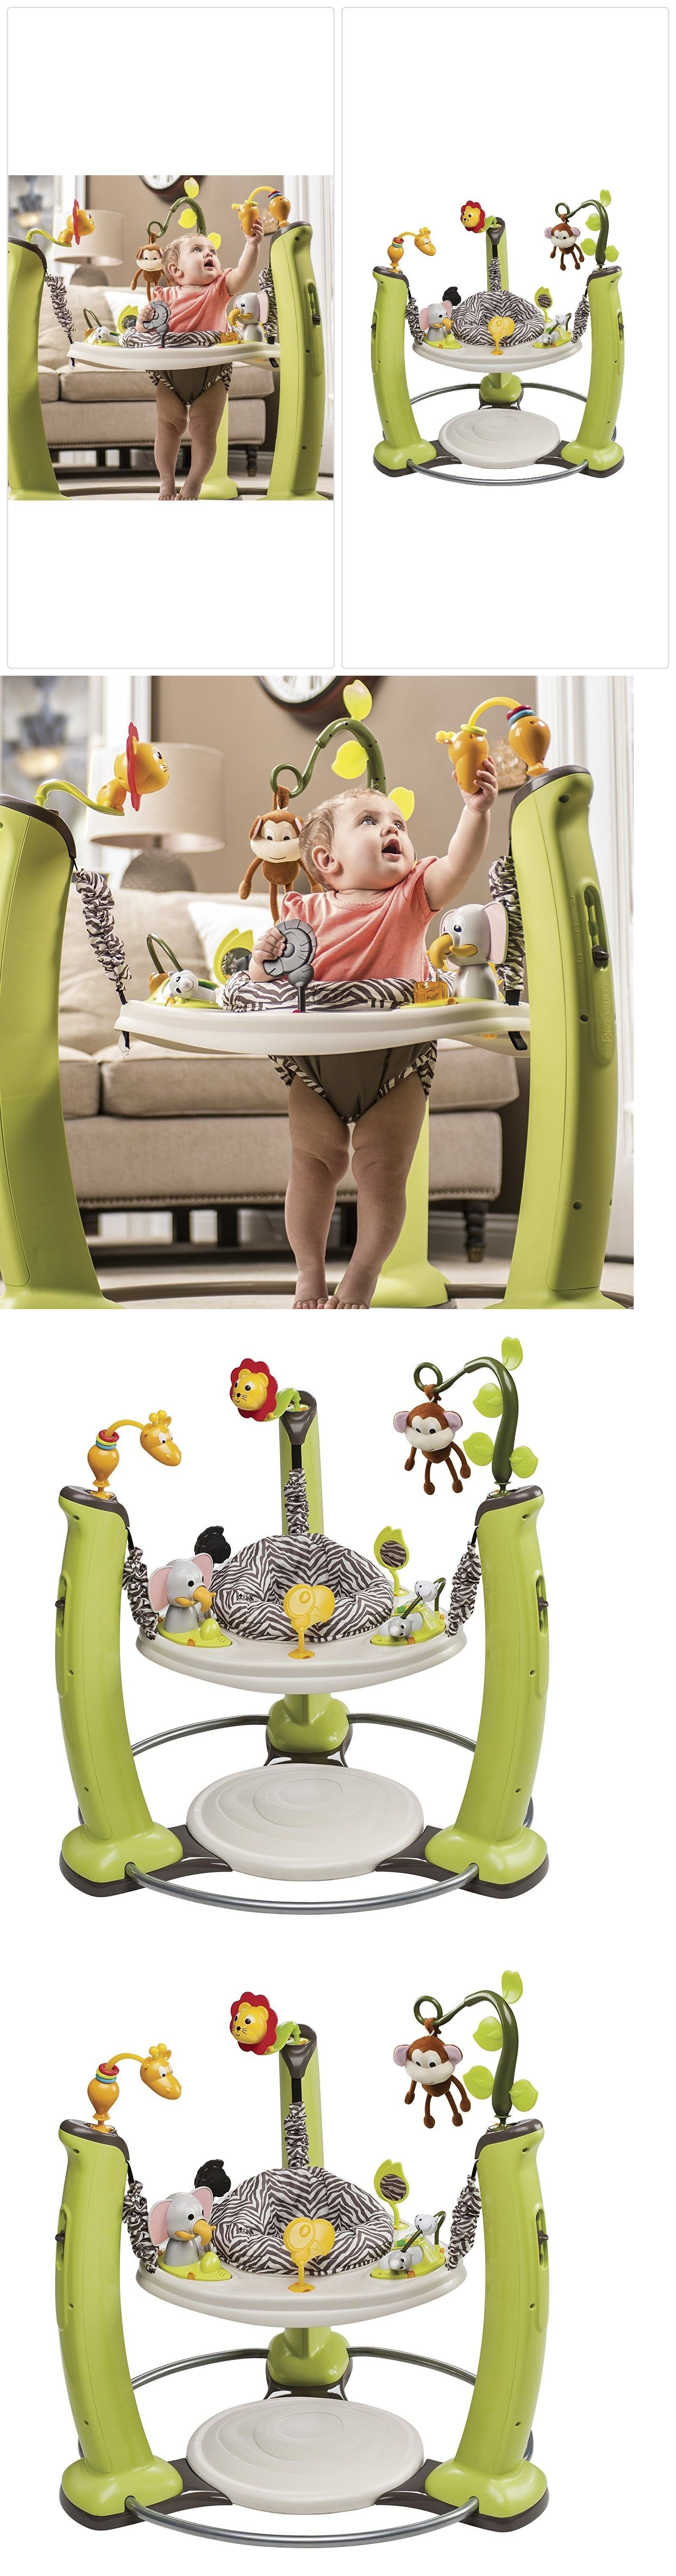 e6524302ba4 Baby Jumping Exercisers 117032  Evenflo Exersaucer Jump Learn Stationary  Jumper - Jungle Quest Safari Zebra -  BUY IT NOW ONLY   142.34 on eBay!